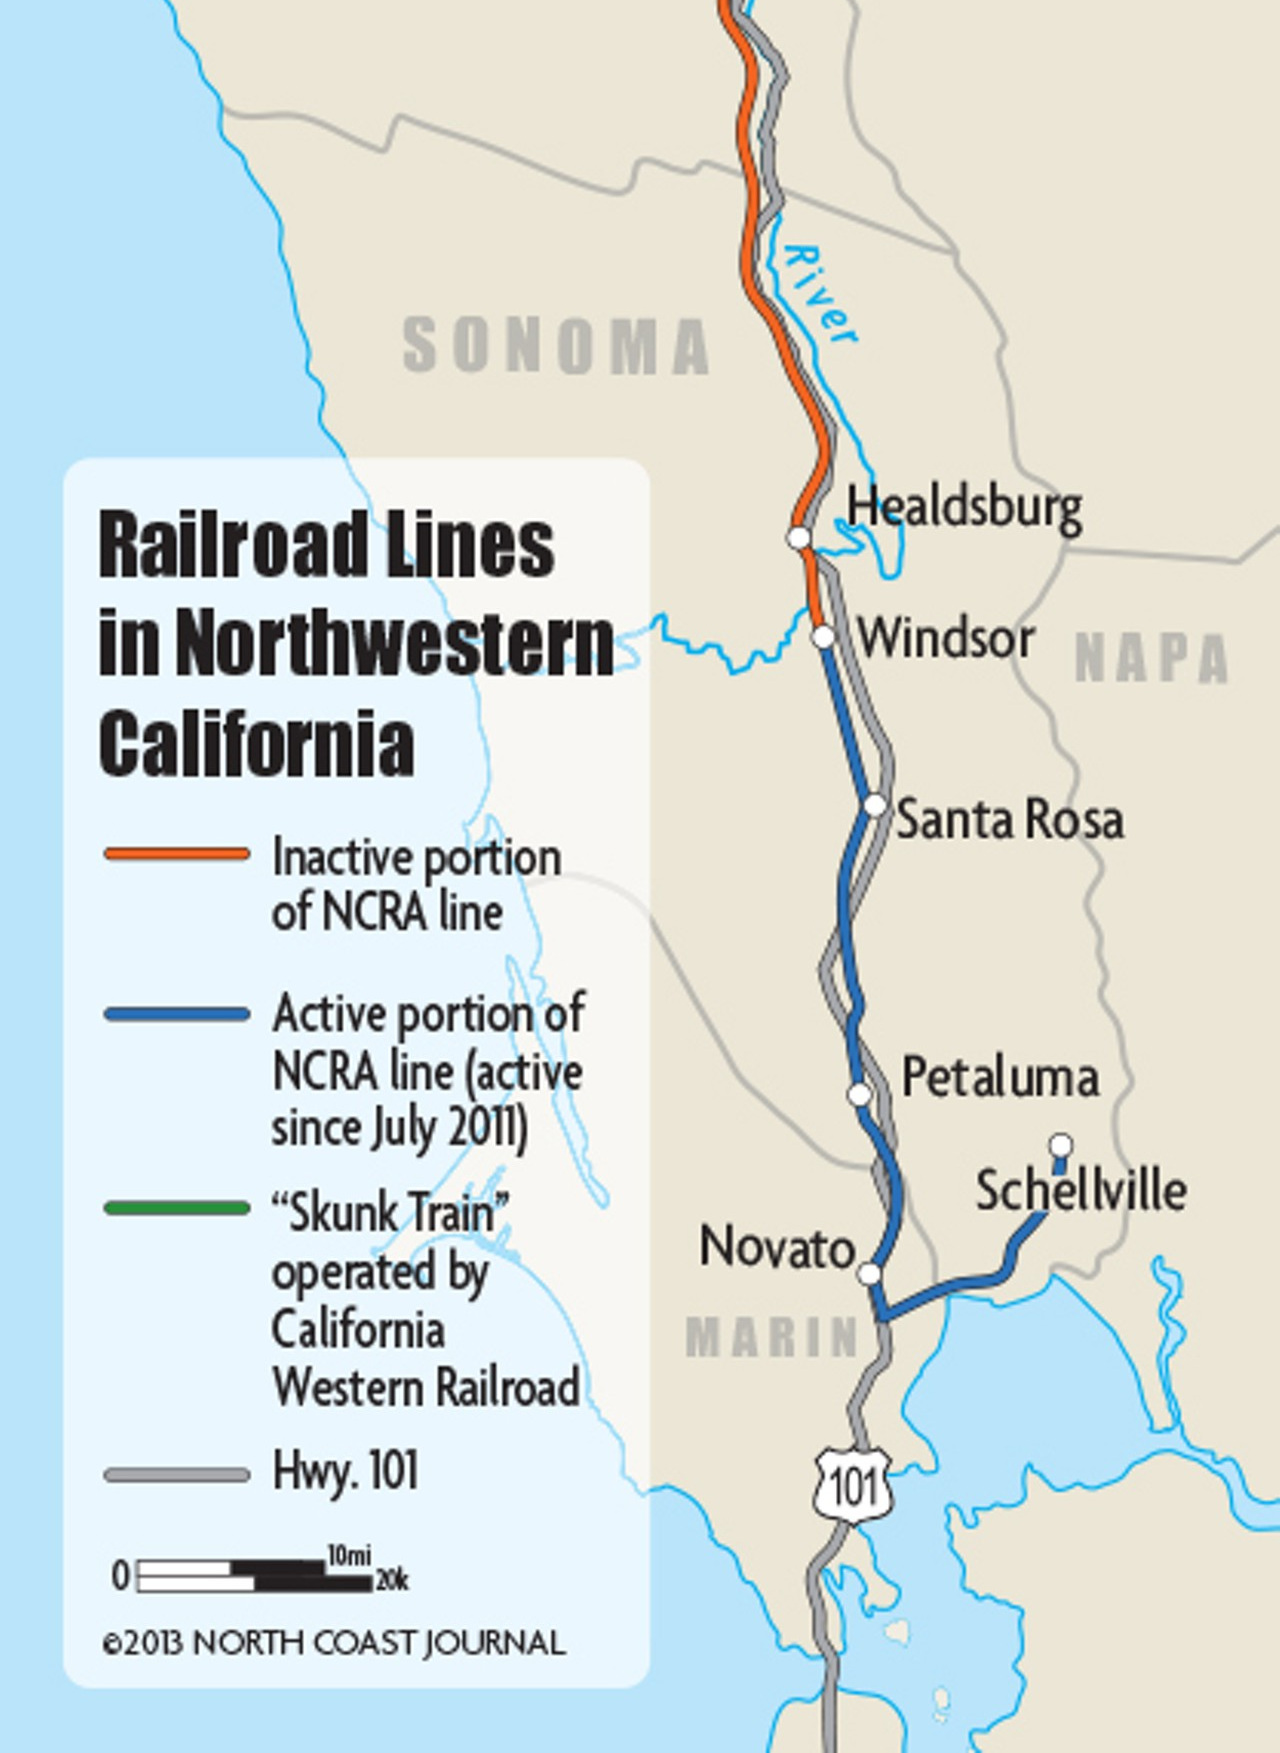 - Southern portion of the line operated by NWP Co.